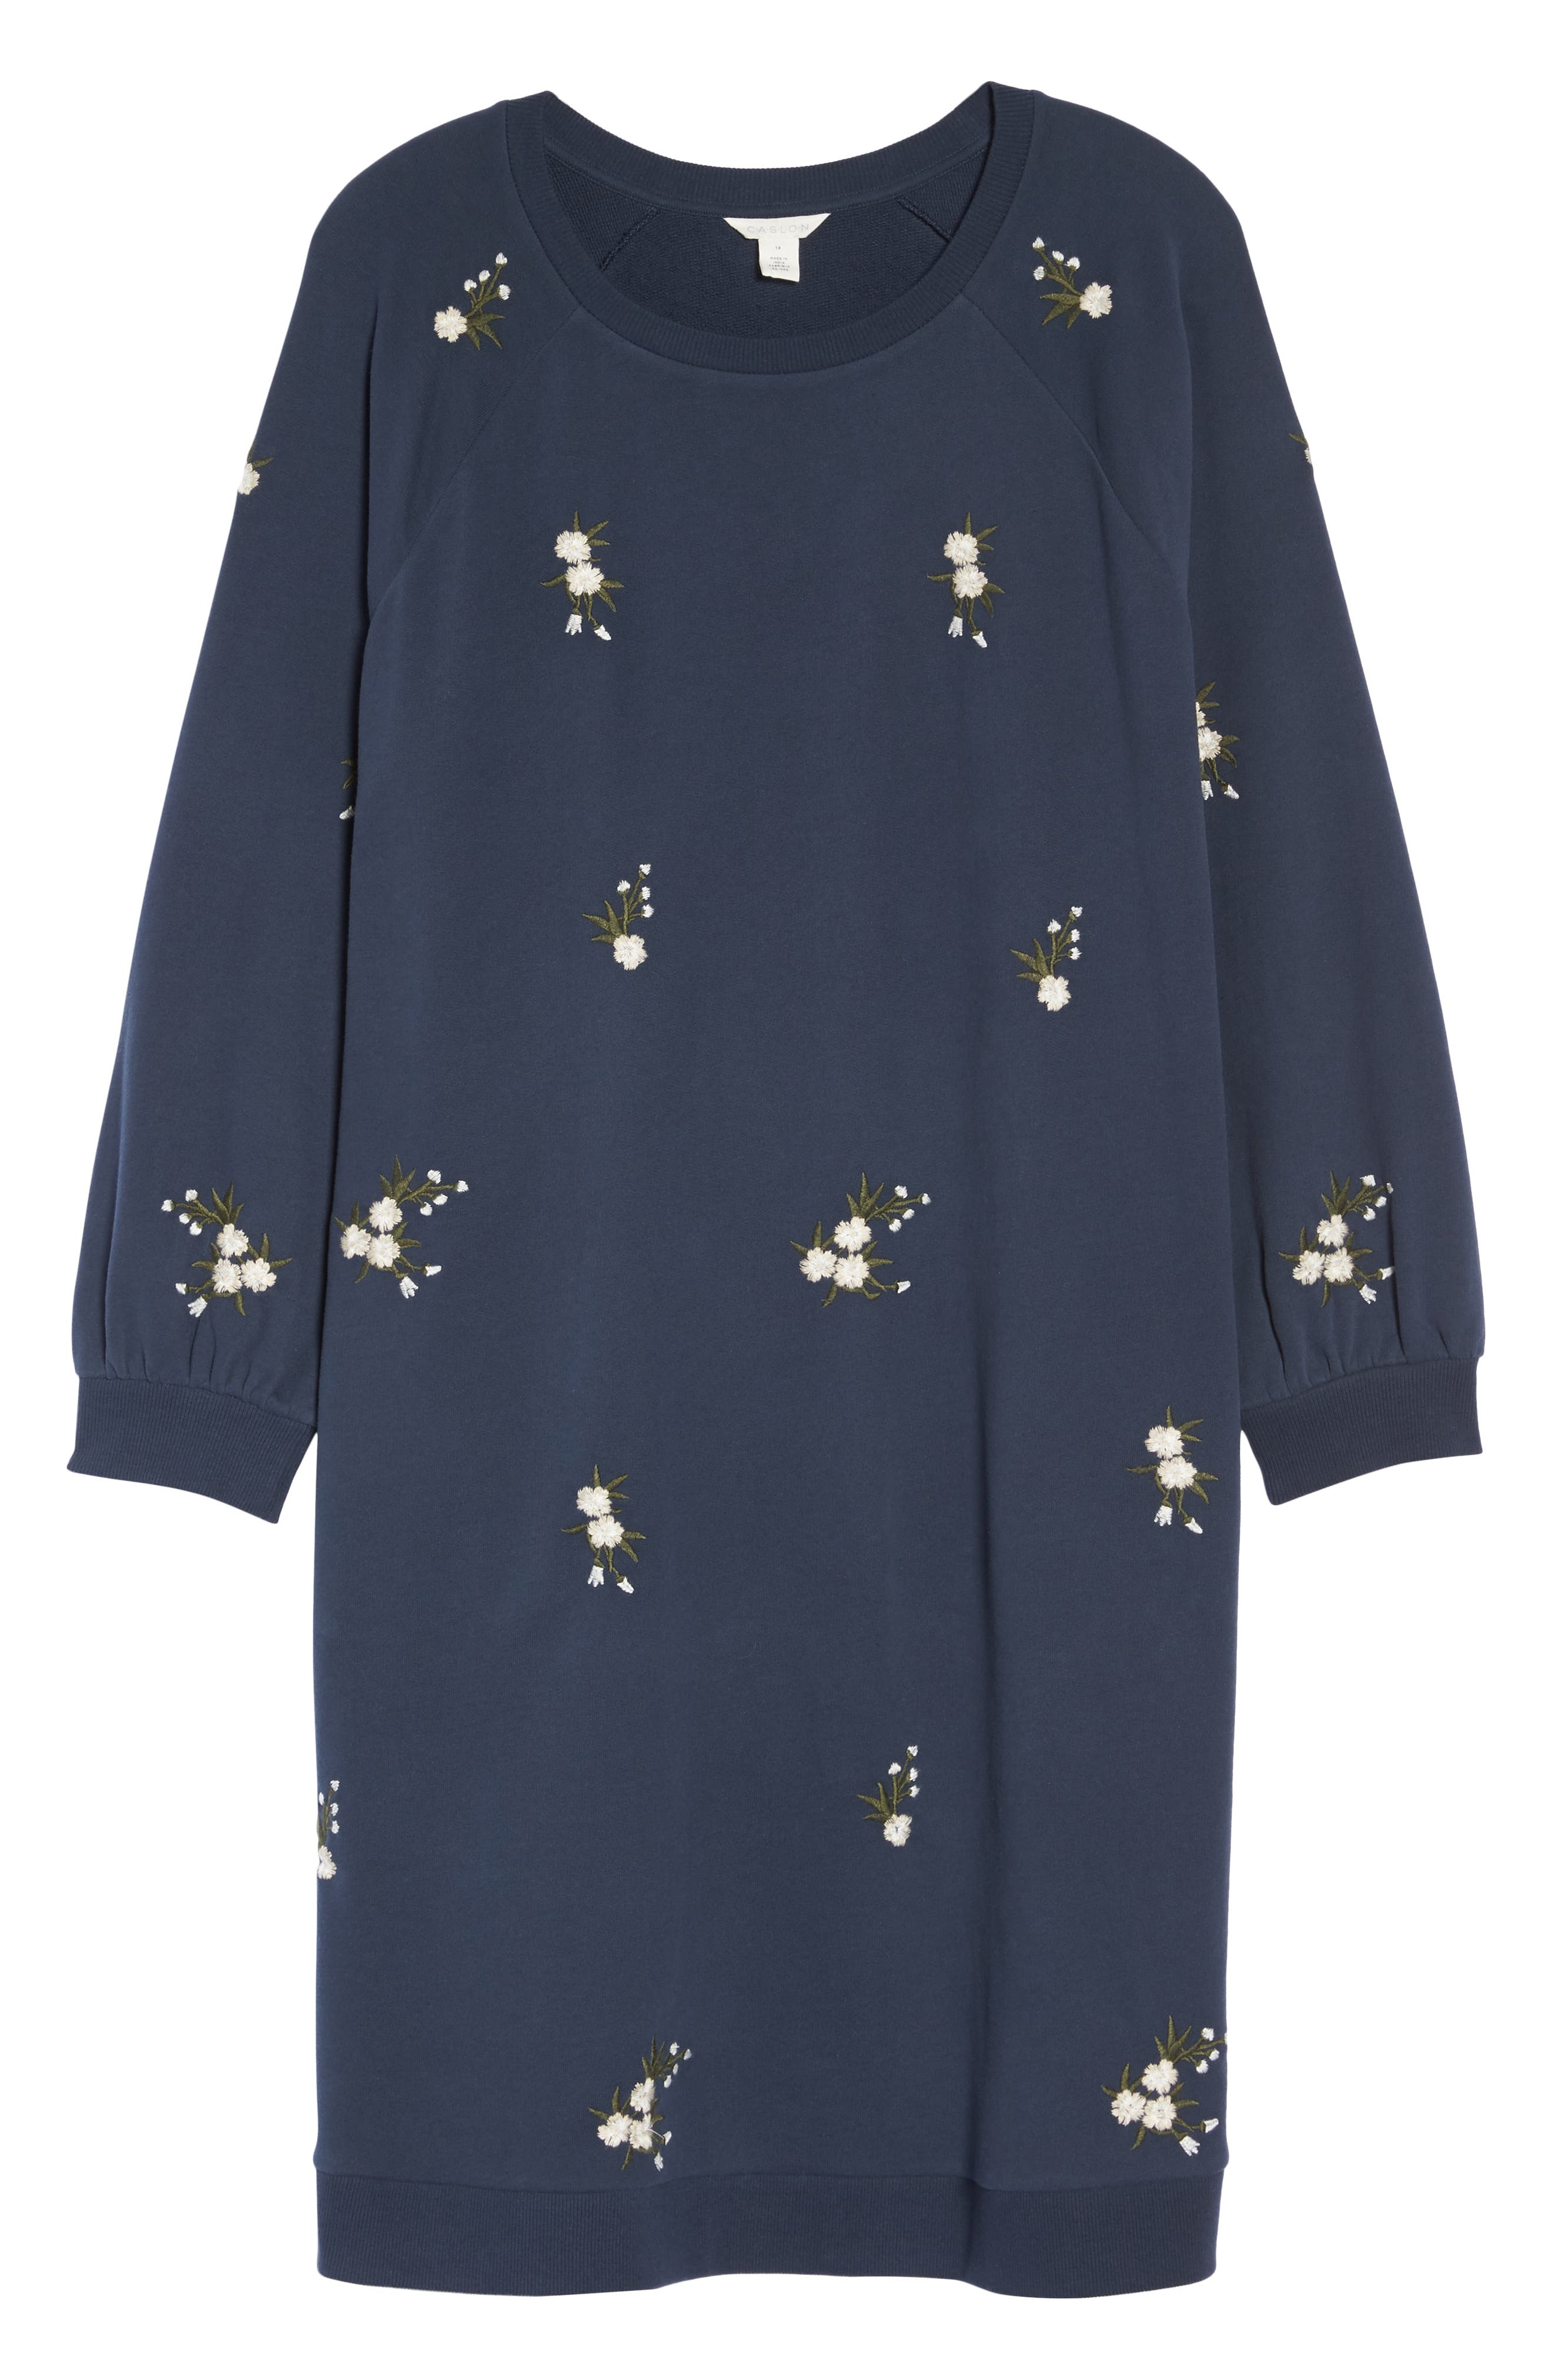 Embroidered Fleece Knit Dress,                             Alternate thumbnail 7, color,                             410